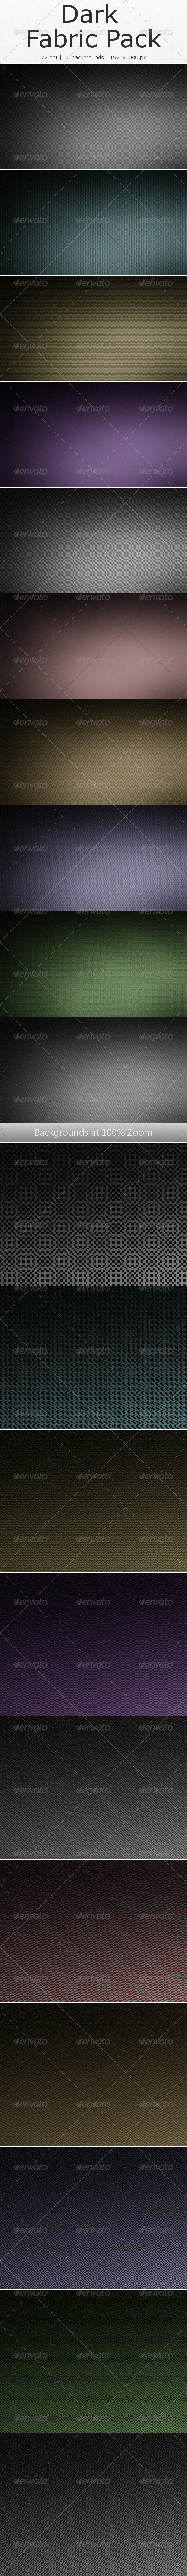 Dark-Fabric-Background-Pack-GraphicRiver-This-pack-contains-dark-fabric-backgrounds-wit-wallpaper-wpc5803939